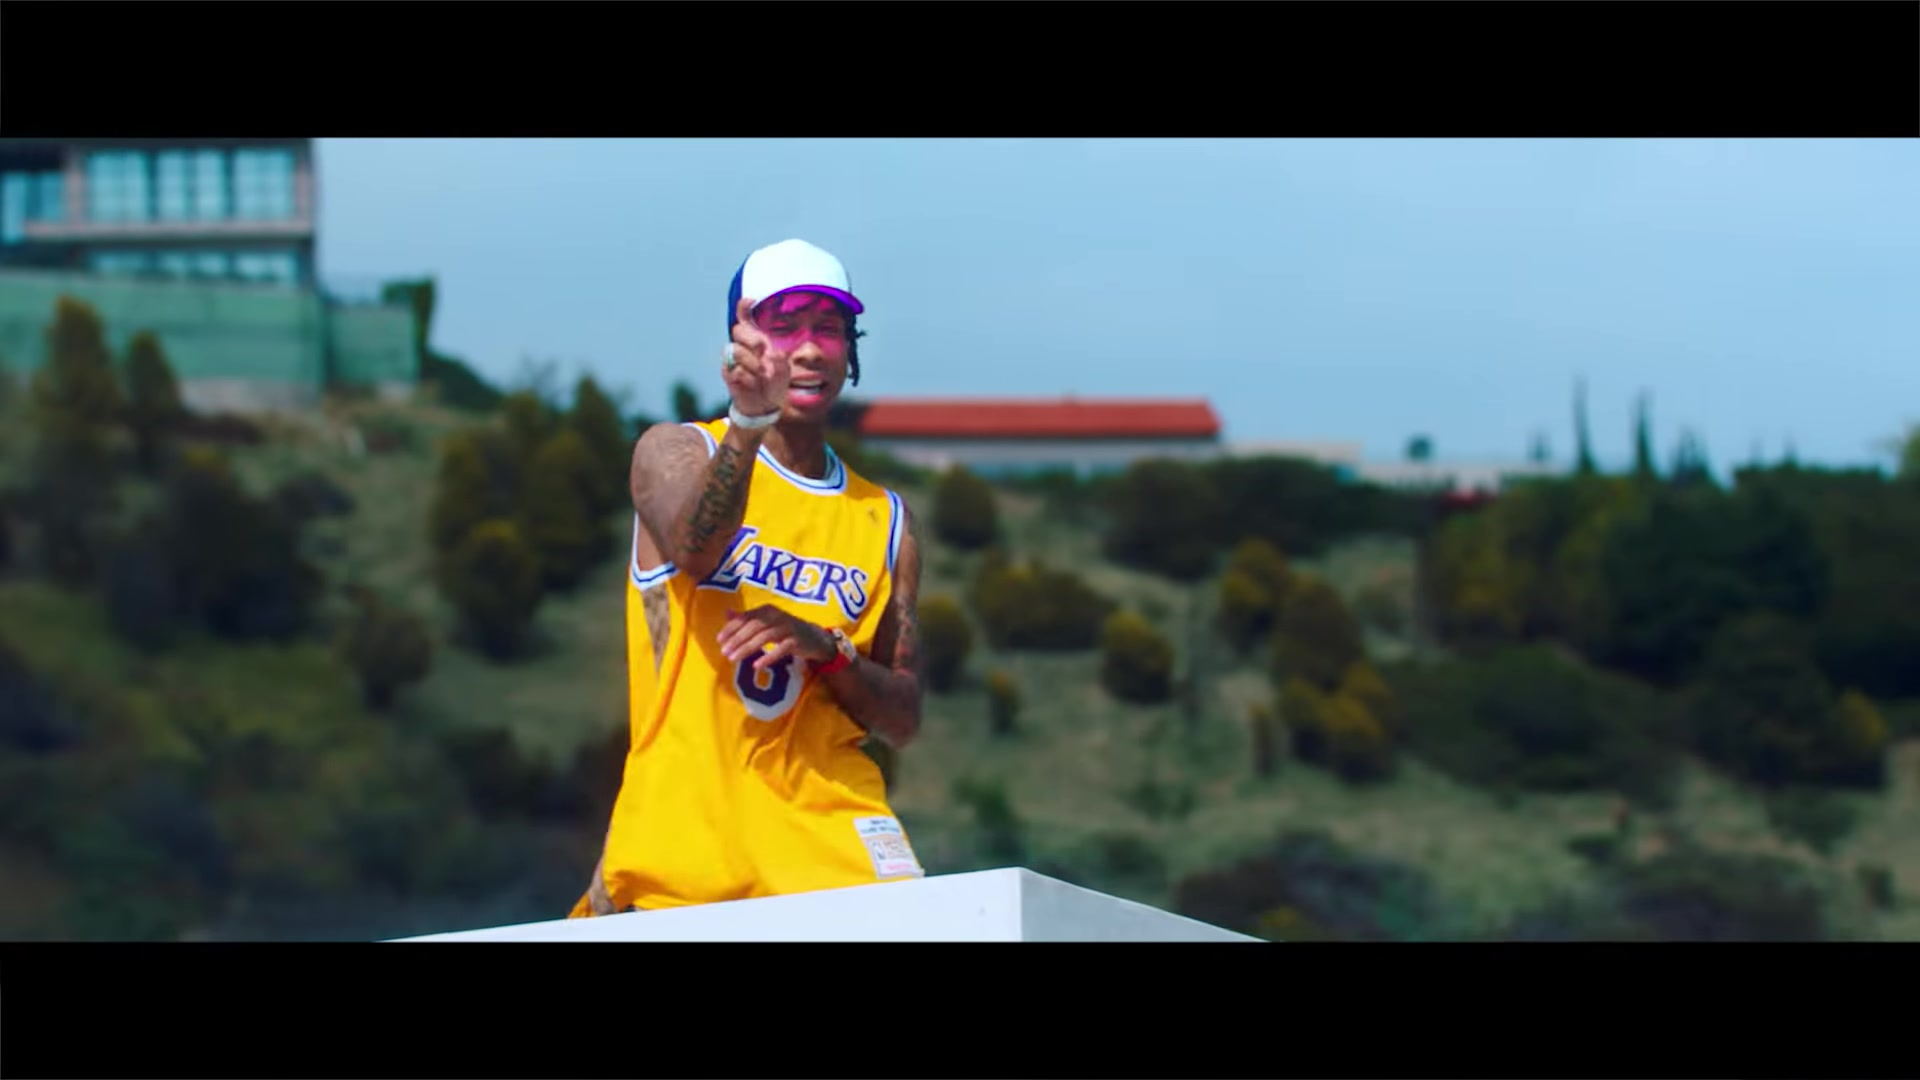 """Used Chevy Traverse >> Lakers Jersey in """"Taste"""" by Tyga ft. Offset (2018 ..."""